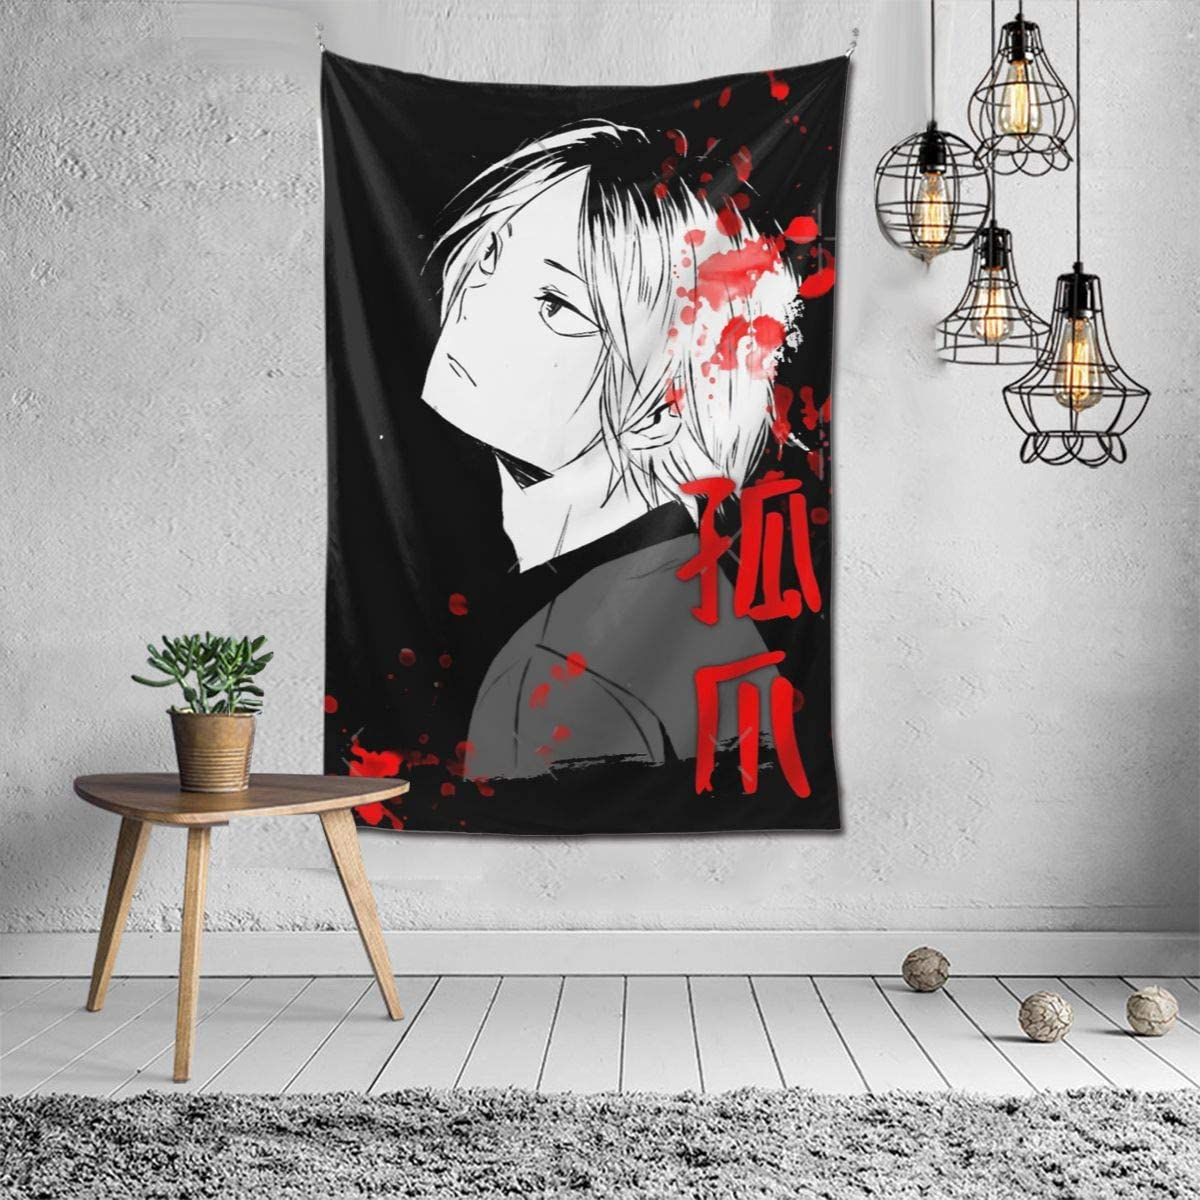 Details about  /Various anime video game characters family decoration watercolor poster Room